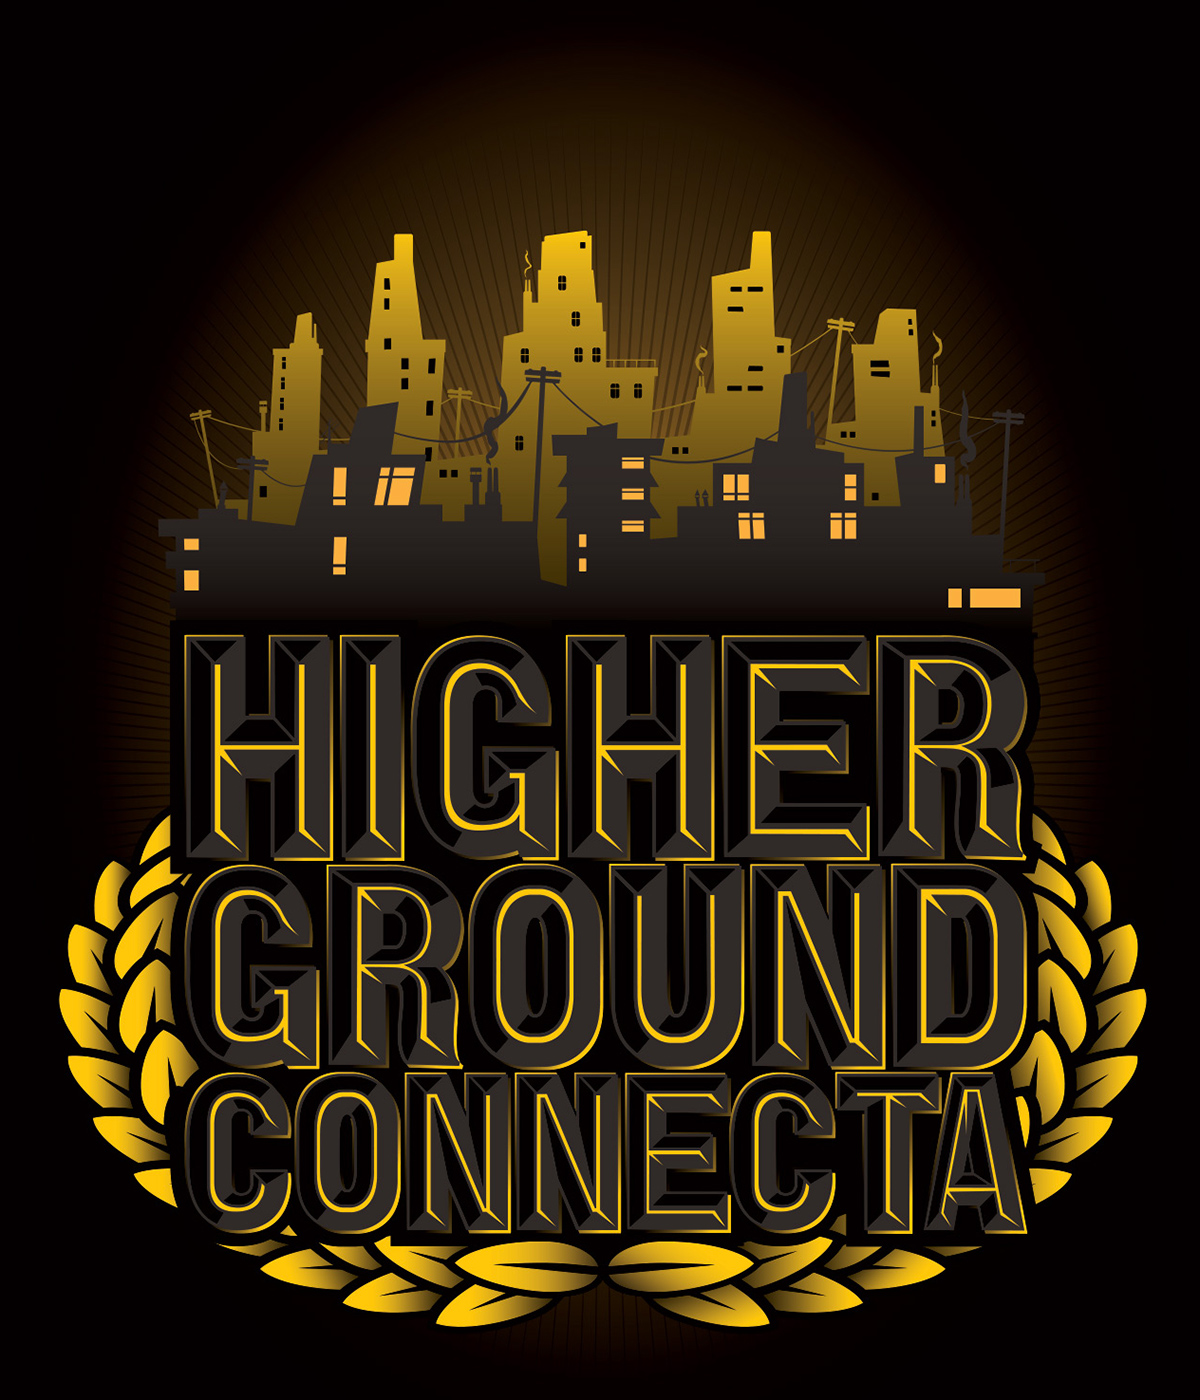 HIGHER GROUND CONNECTA